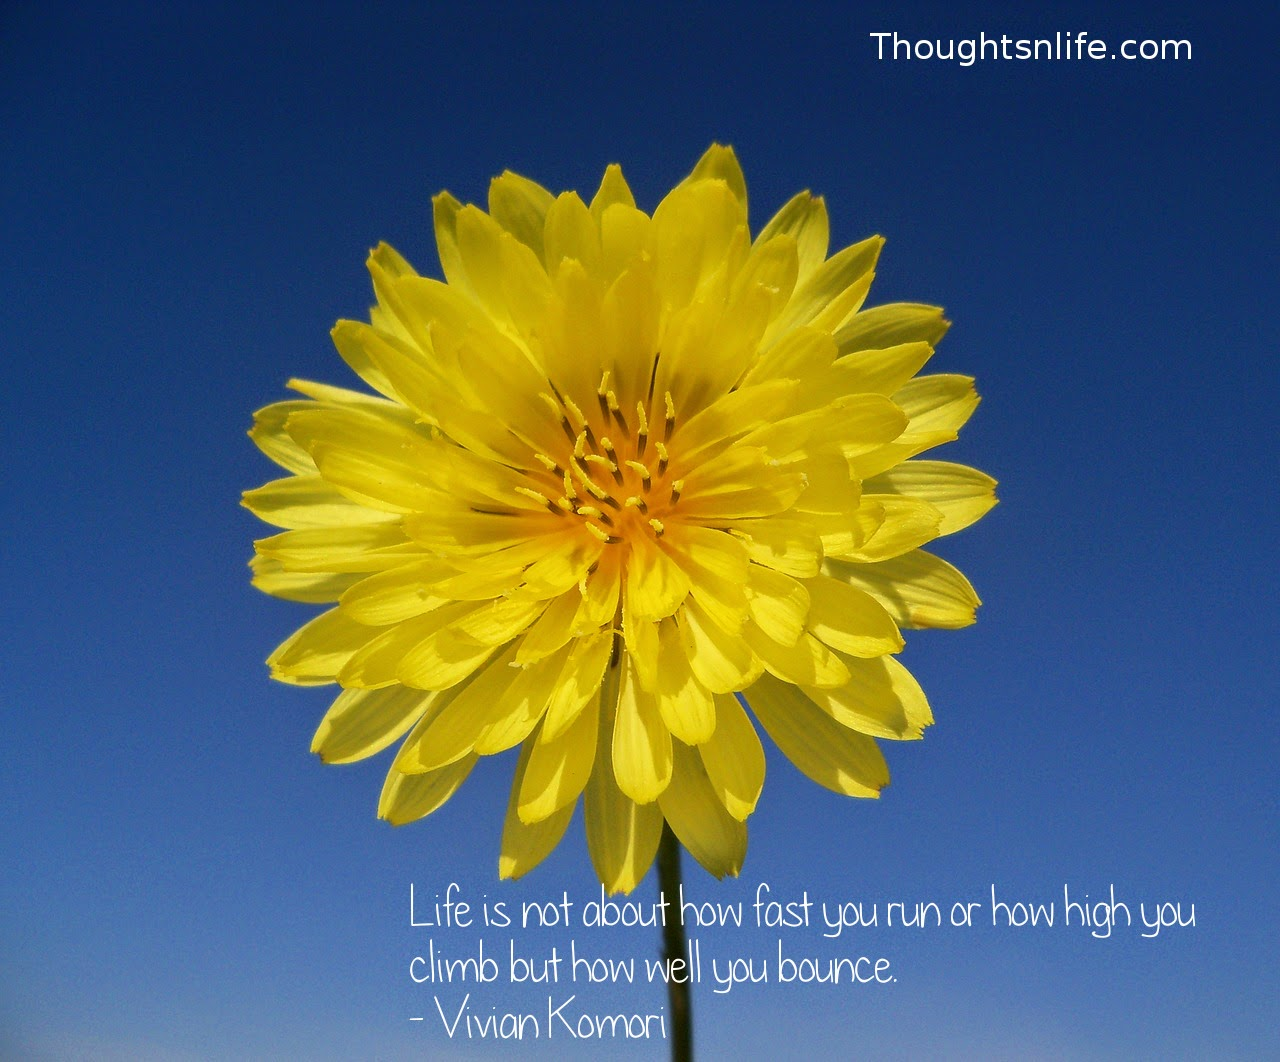 Thoughtsnlife.com : Life is not about how fast you run or how high you climb but how well you bounce. - Vivian Komori